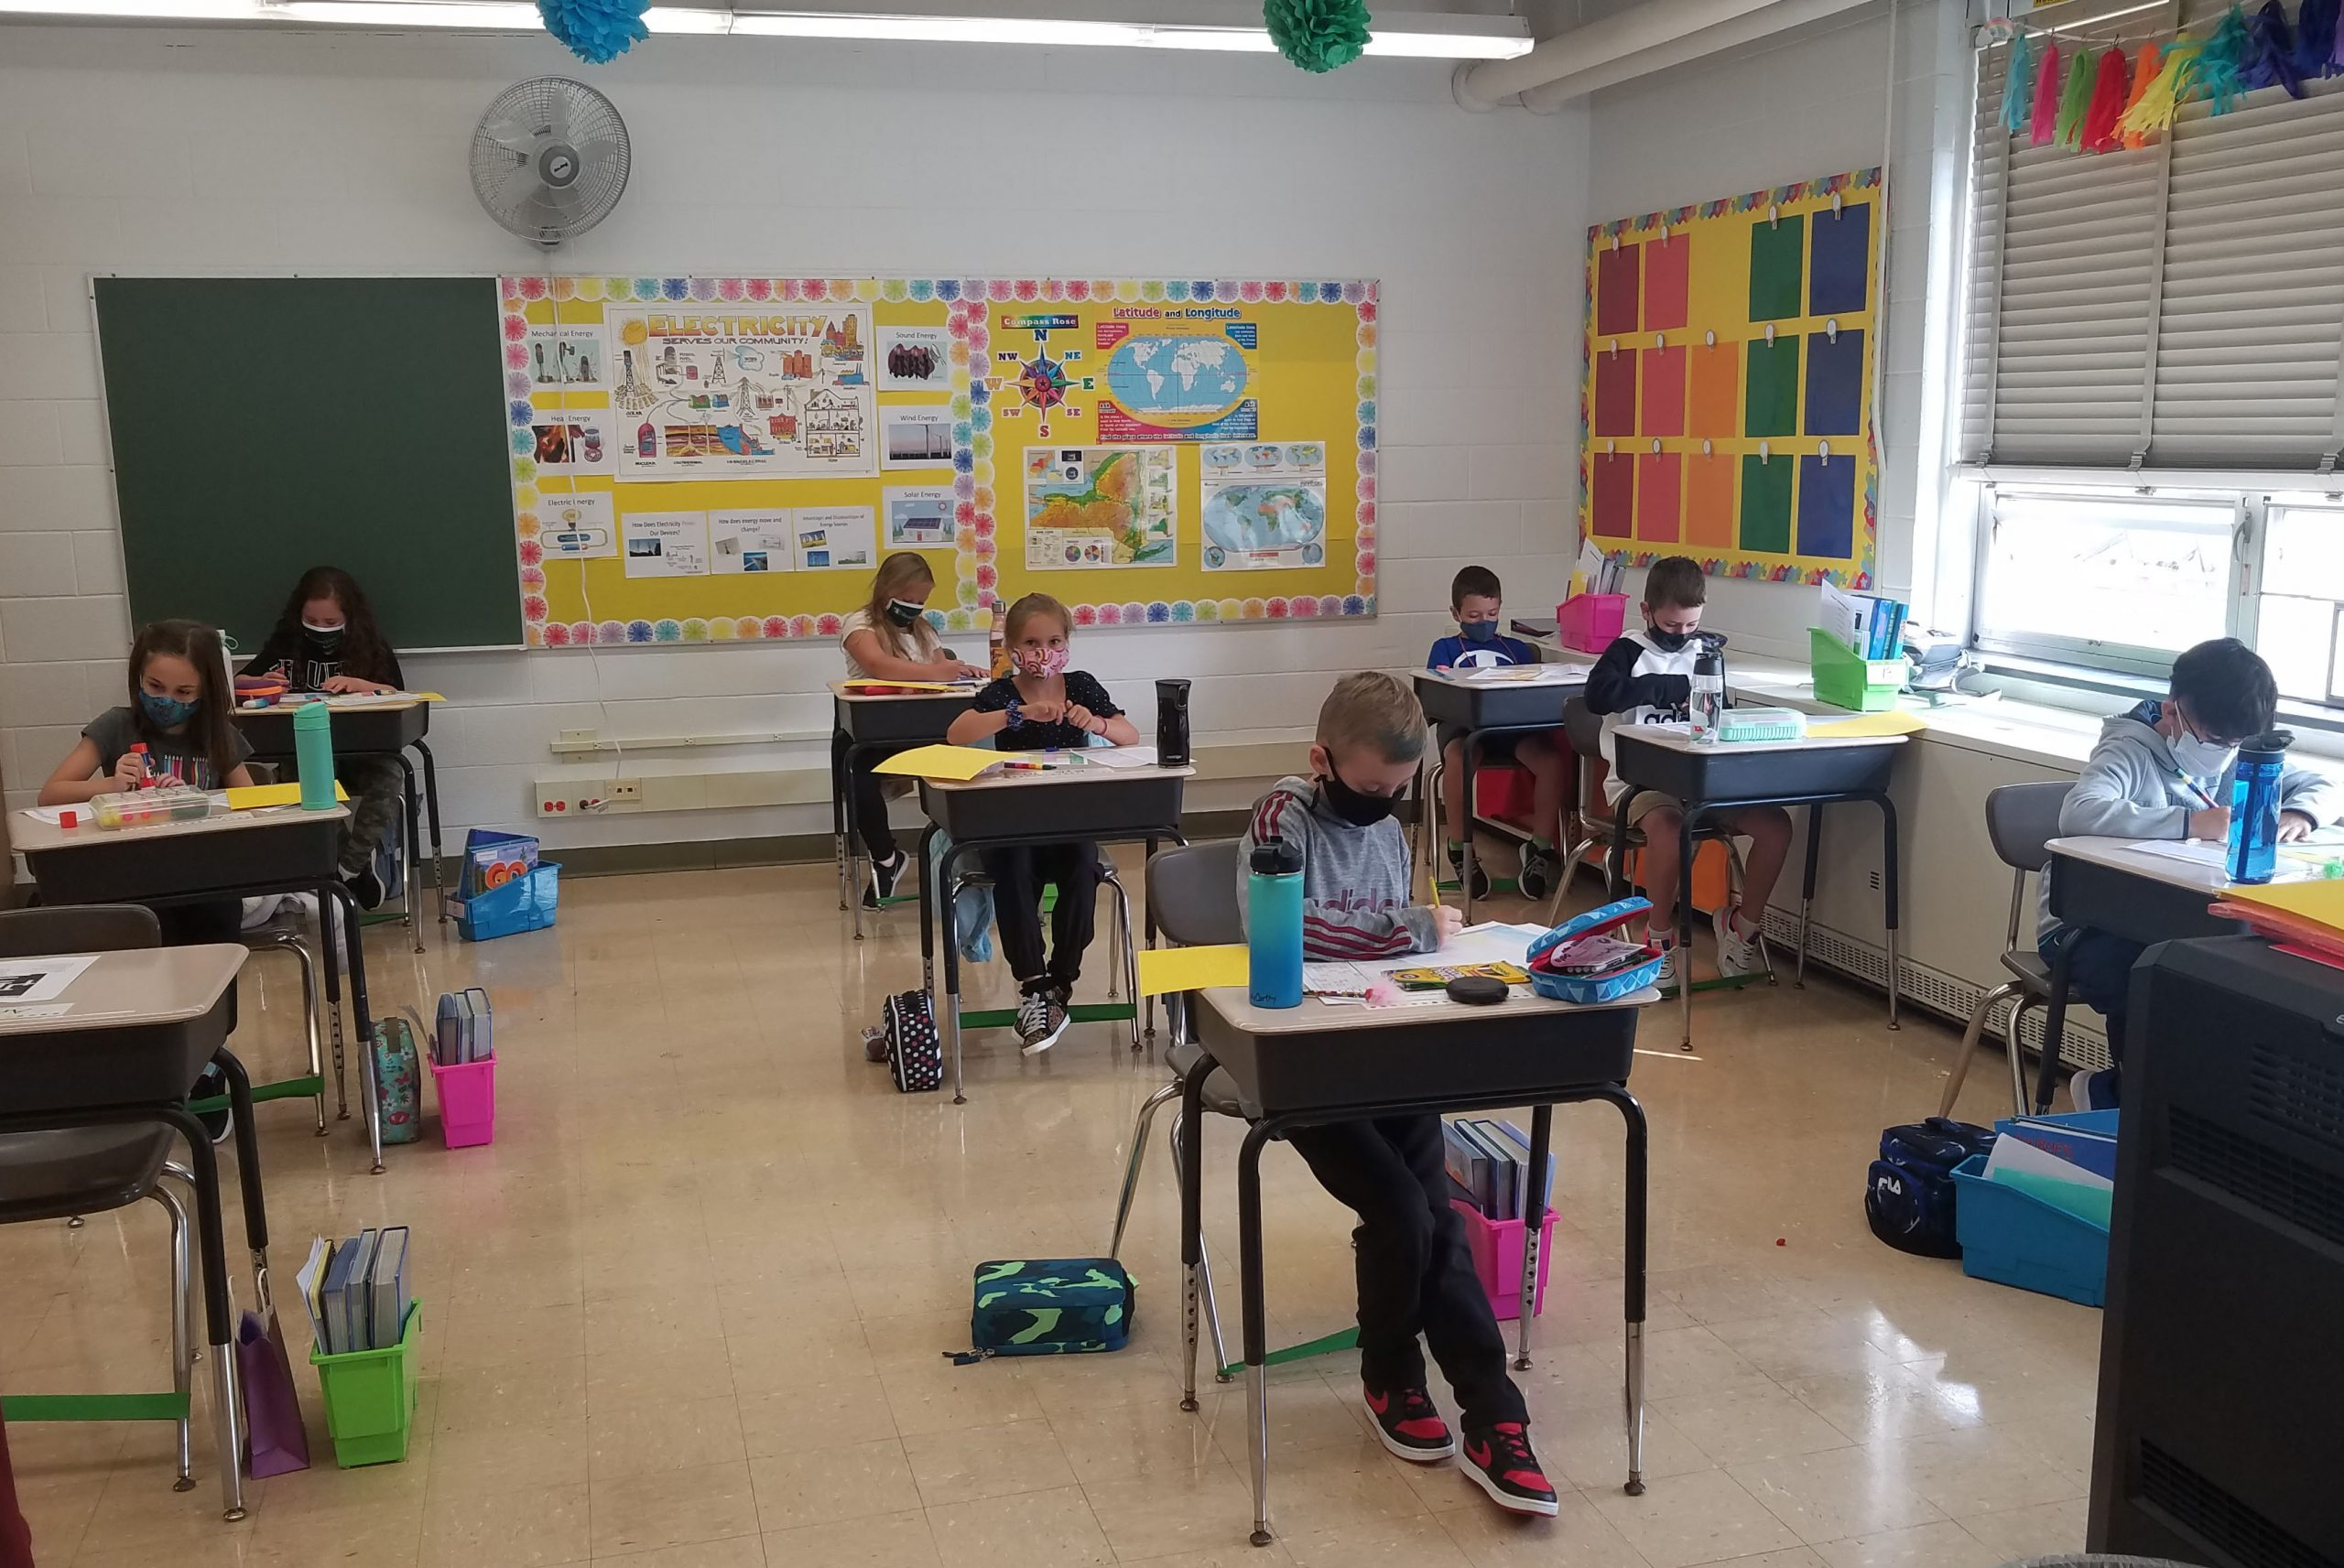 Students sitting at desks in class